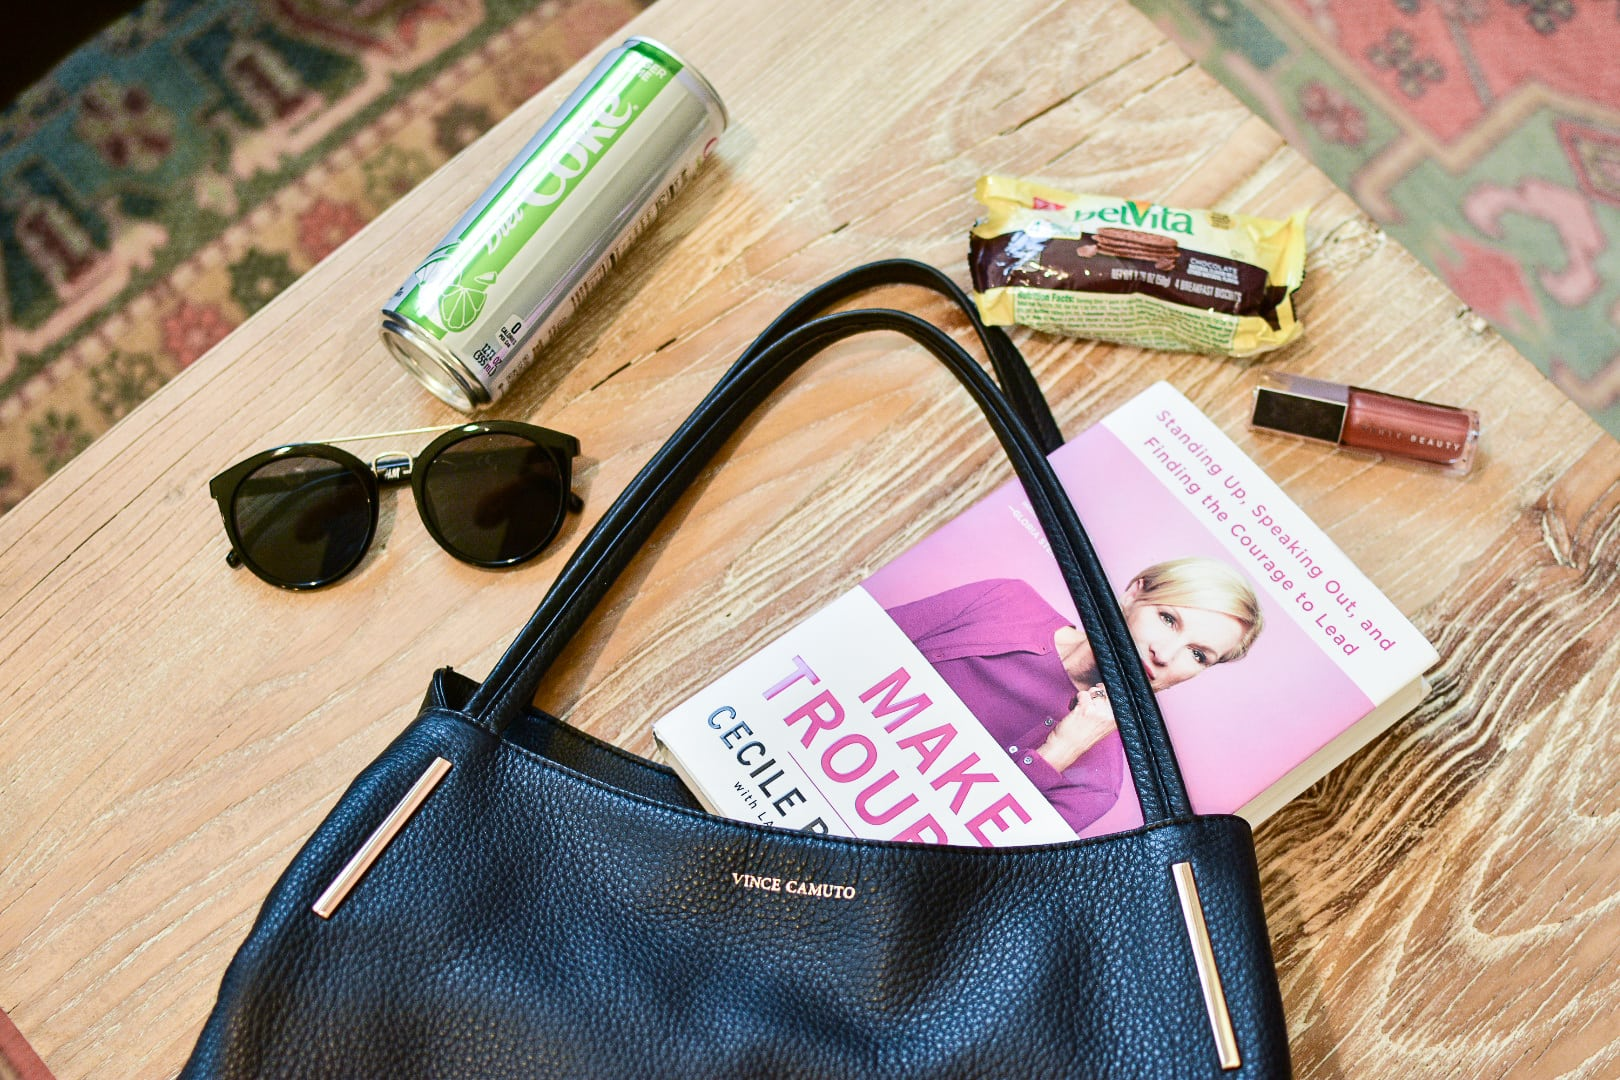 2de0161f45a2 See what s inside Leslie s Vince Camuto handbag and discover her 5 must-have  items to get her through the ...